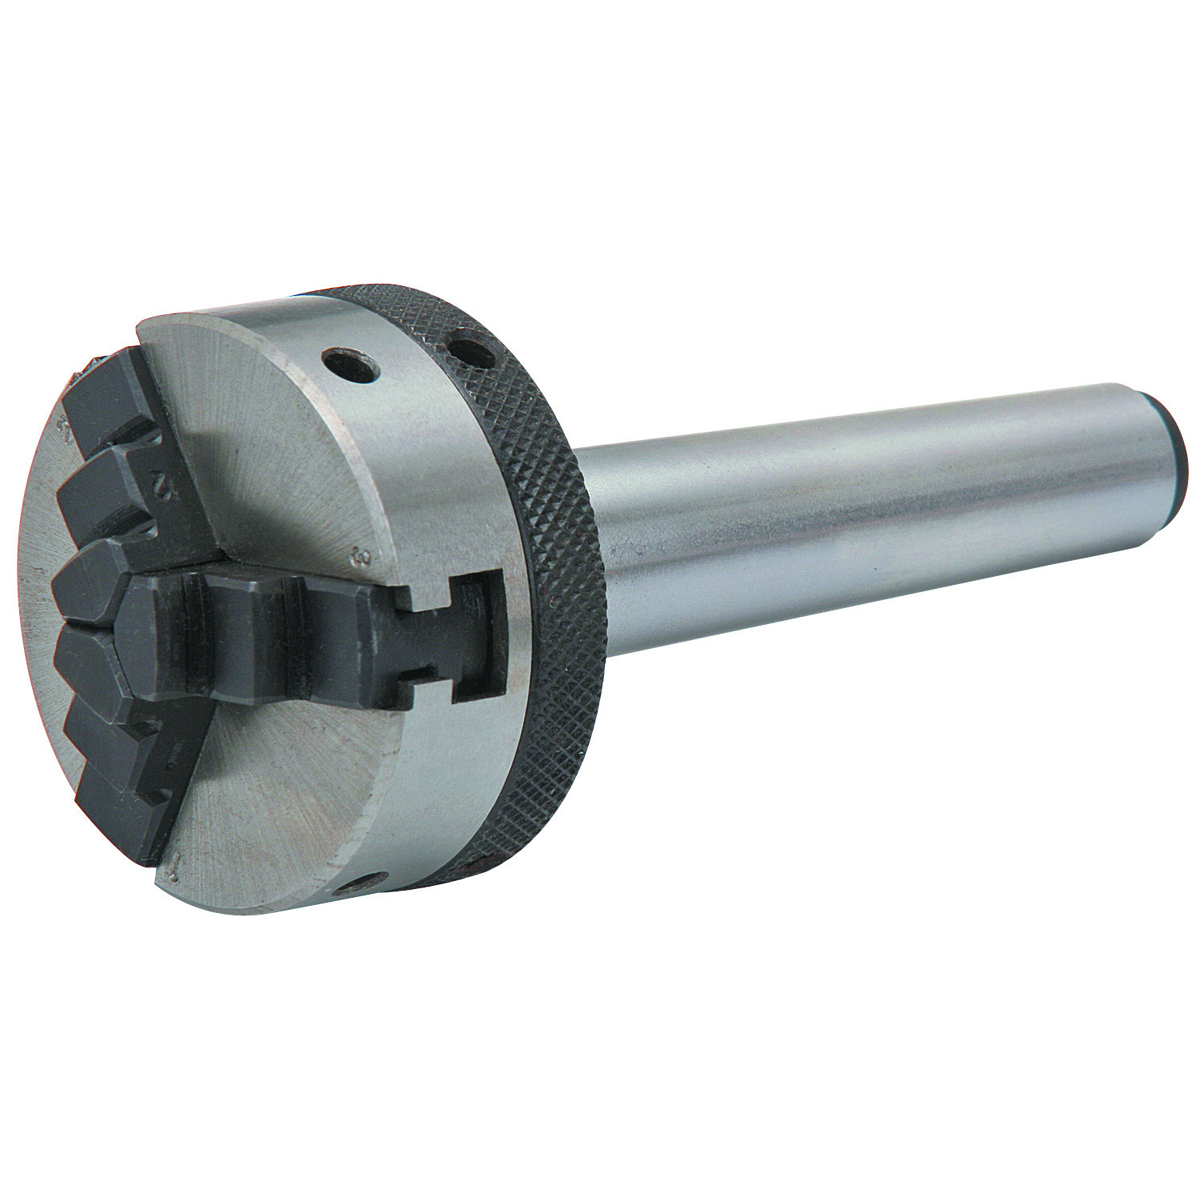 2 Quot Mini Lathe Chuck With Mt 1 Shank